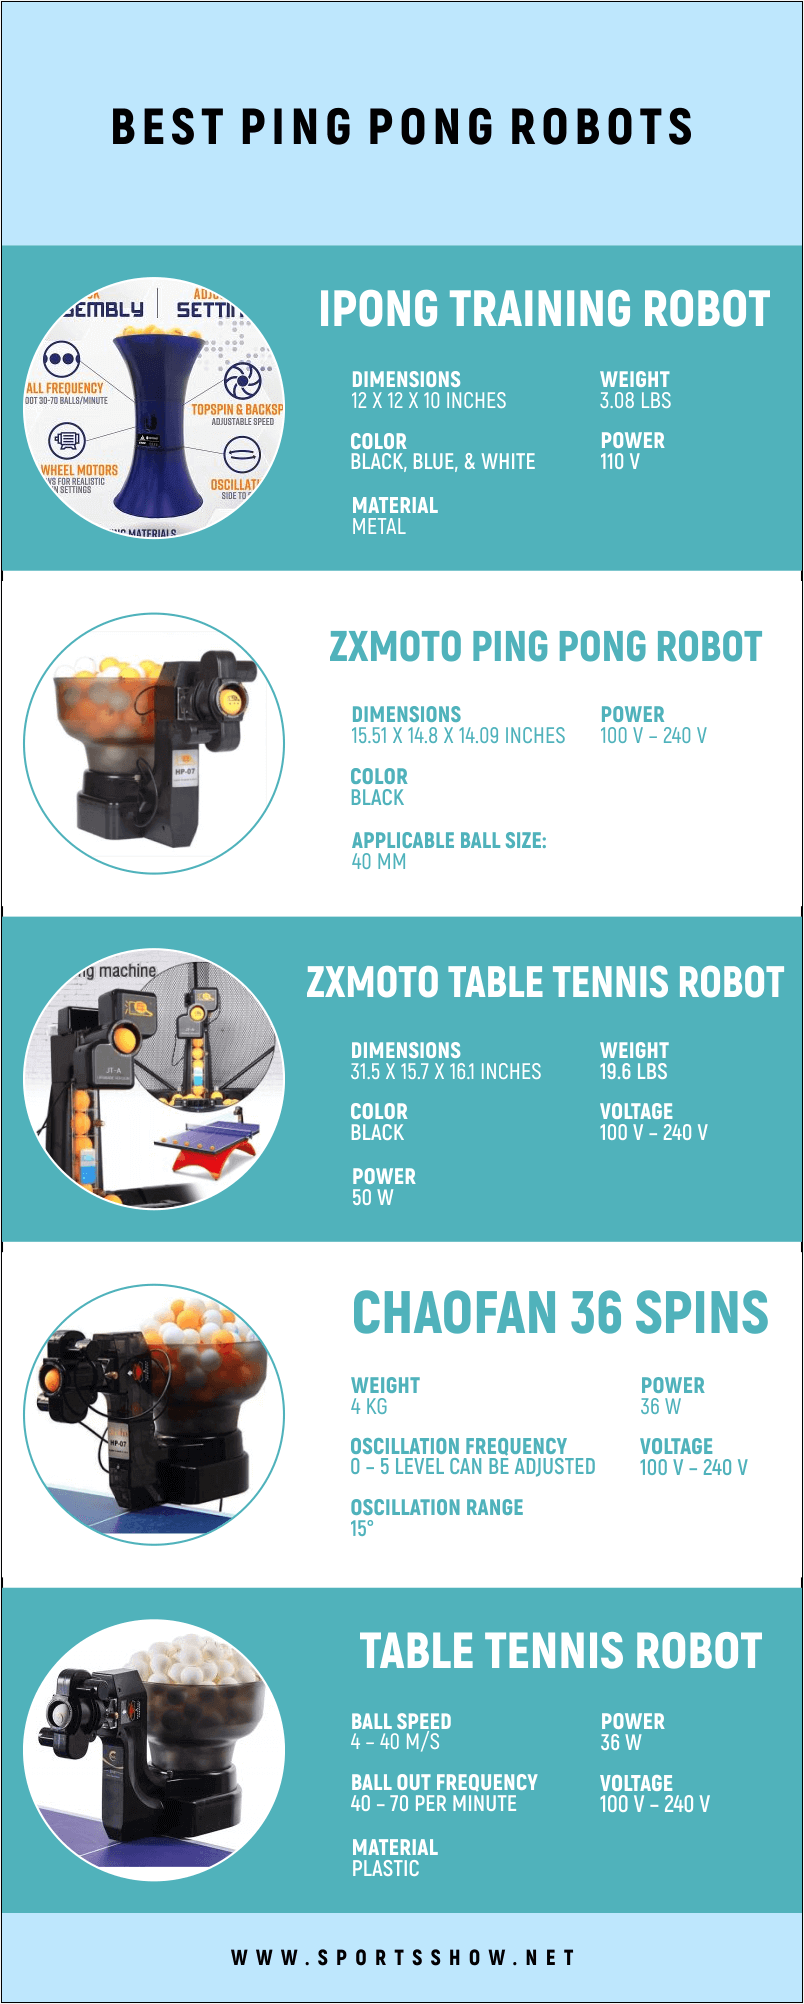 Best Ping Pong Robots - Infographic